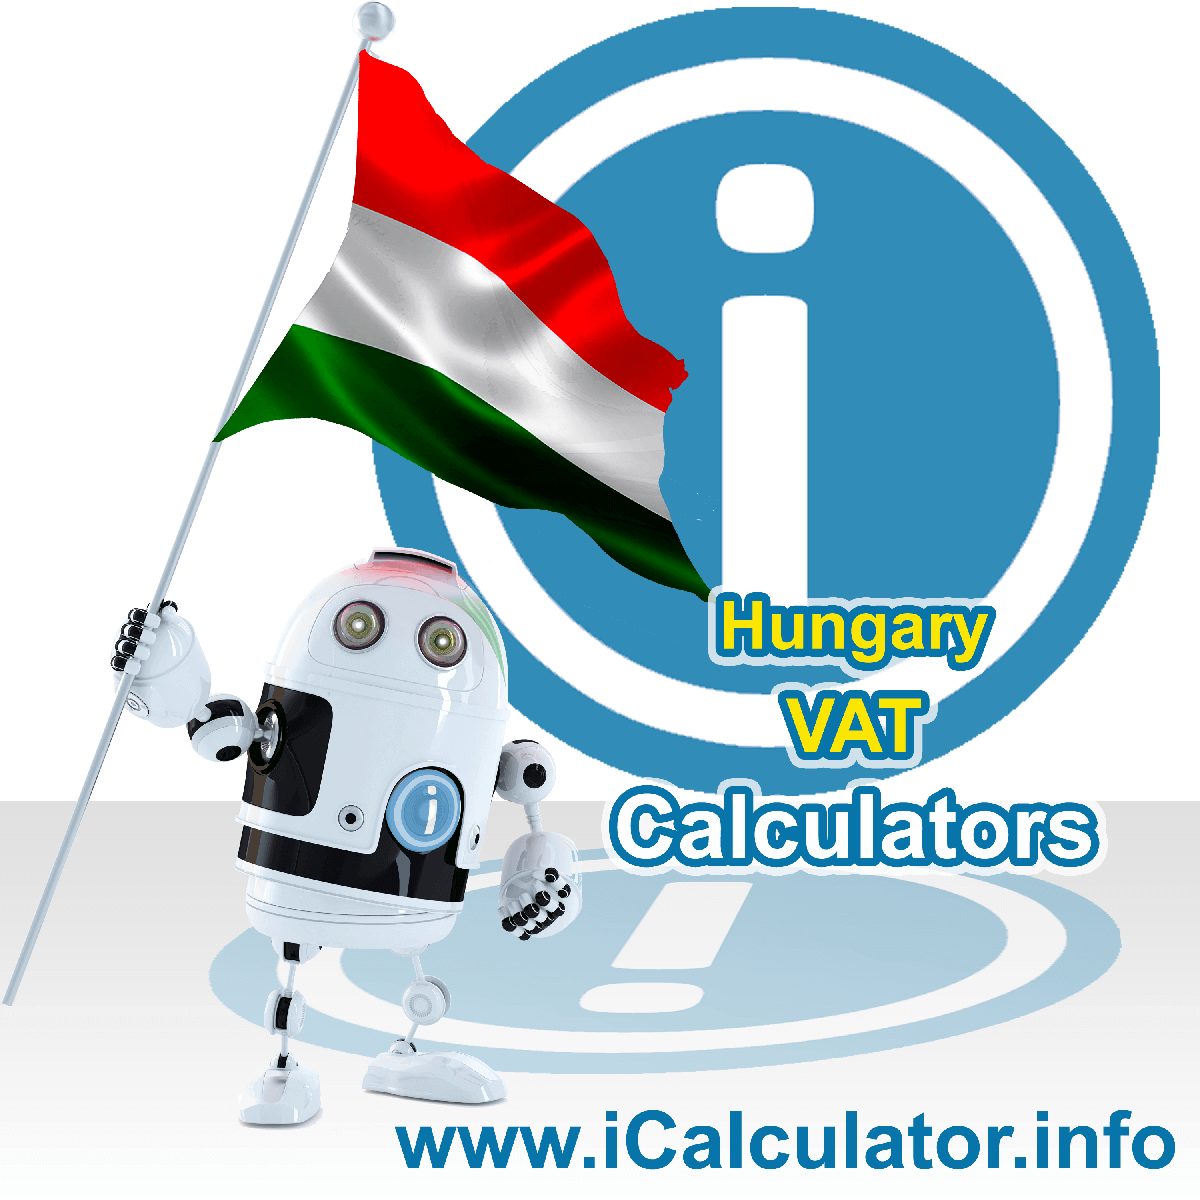 Hungary VAT Calculator. This image shows the Hungary flag and information relating to the VAT formula used for calculating Value Added Tax in Hungary using the Hungary VAT Calculator in 2020